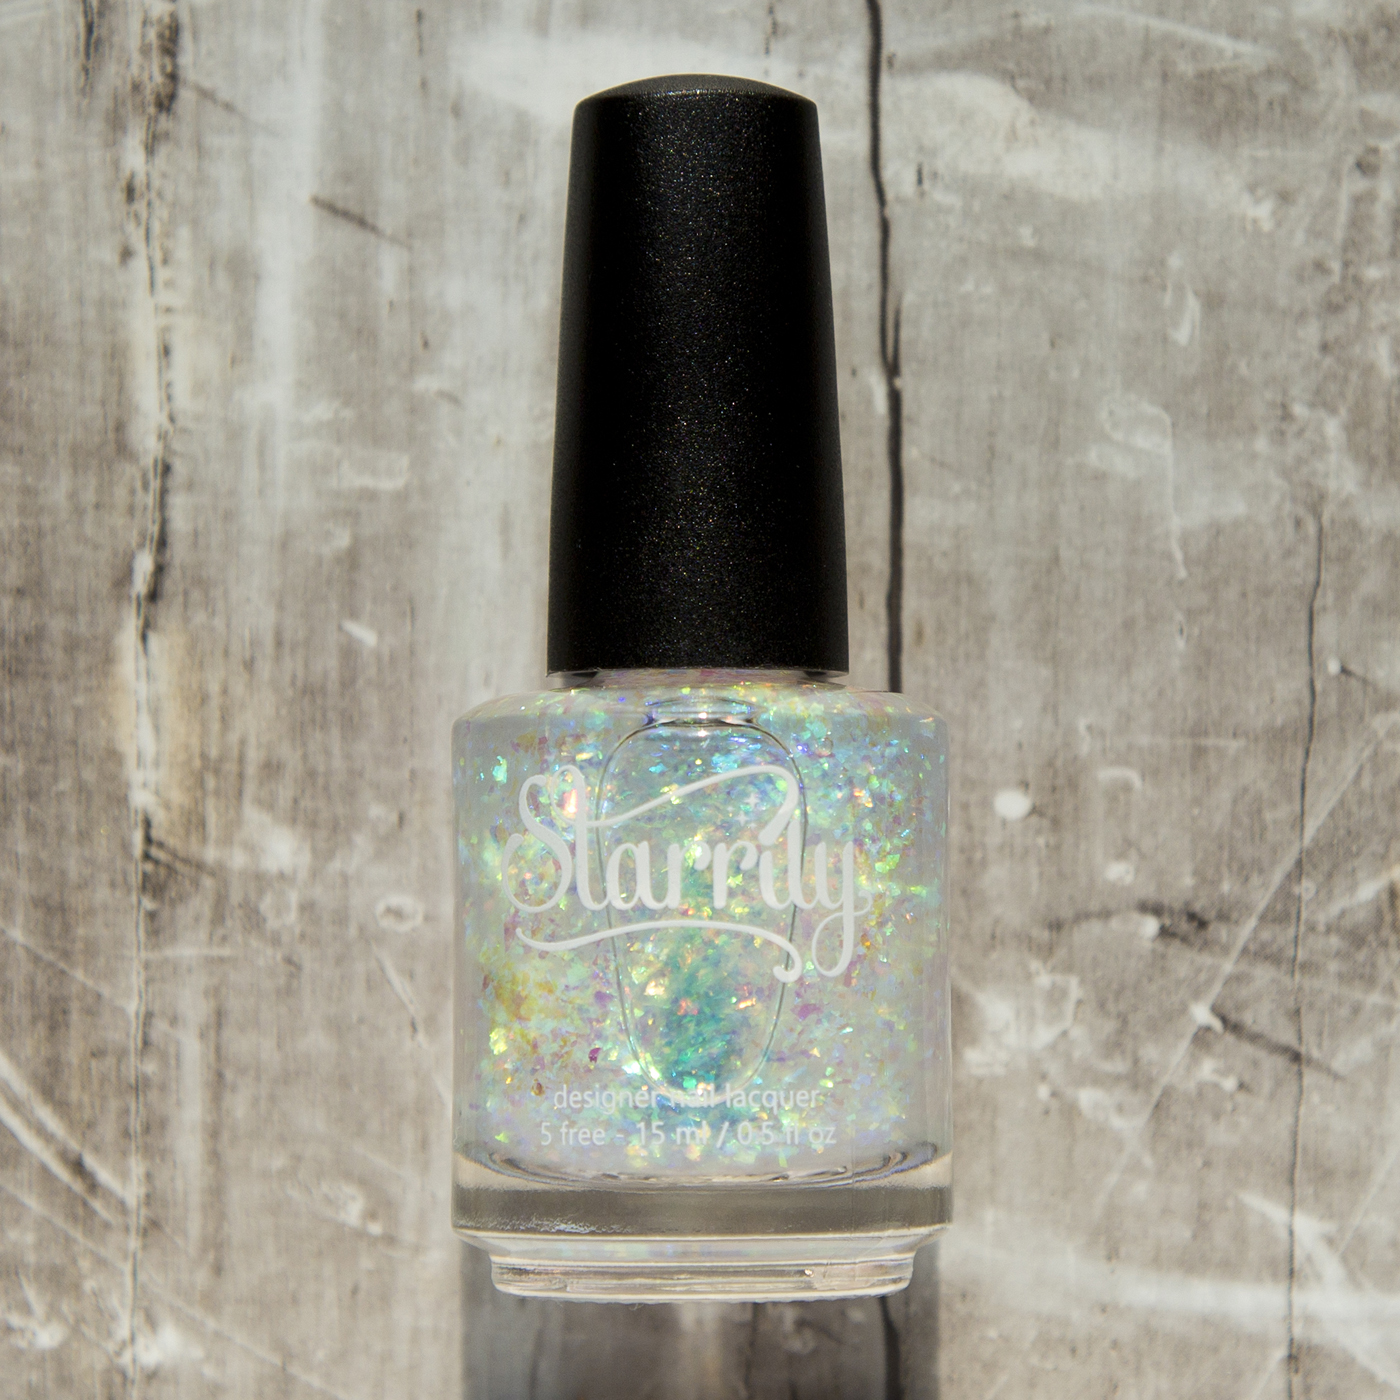 Starrily Northern Lights